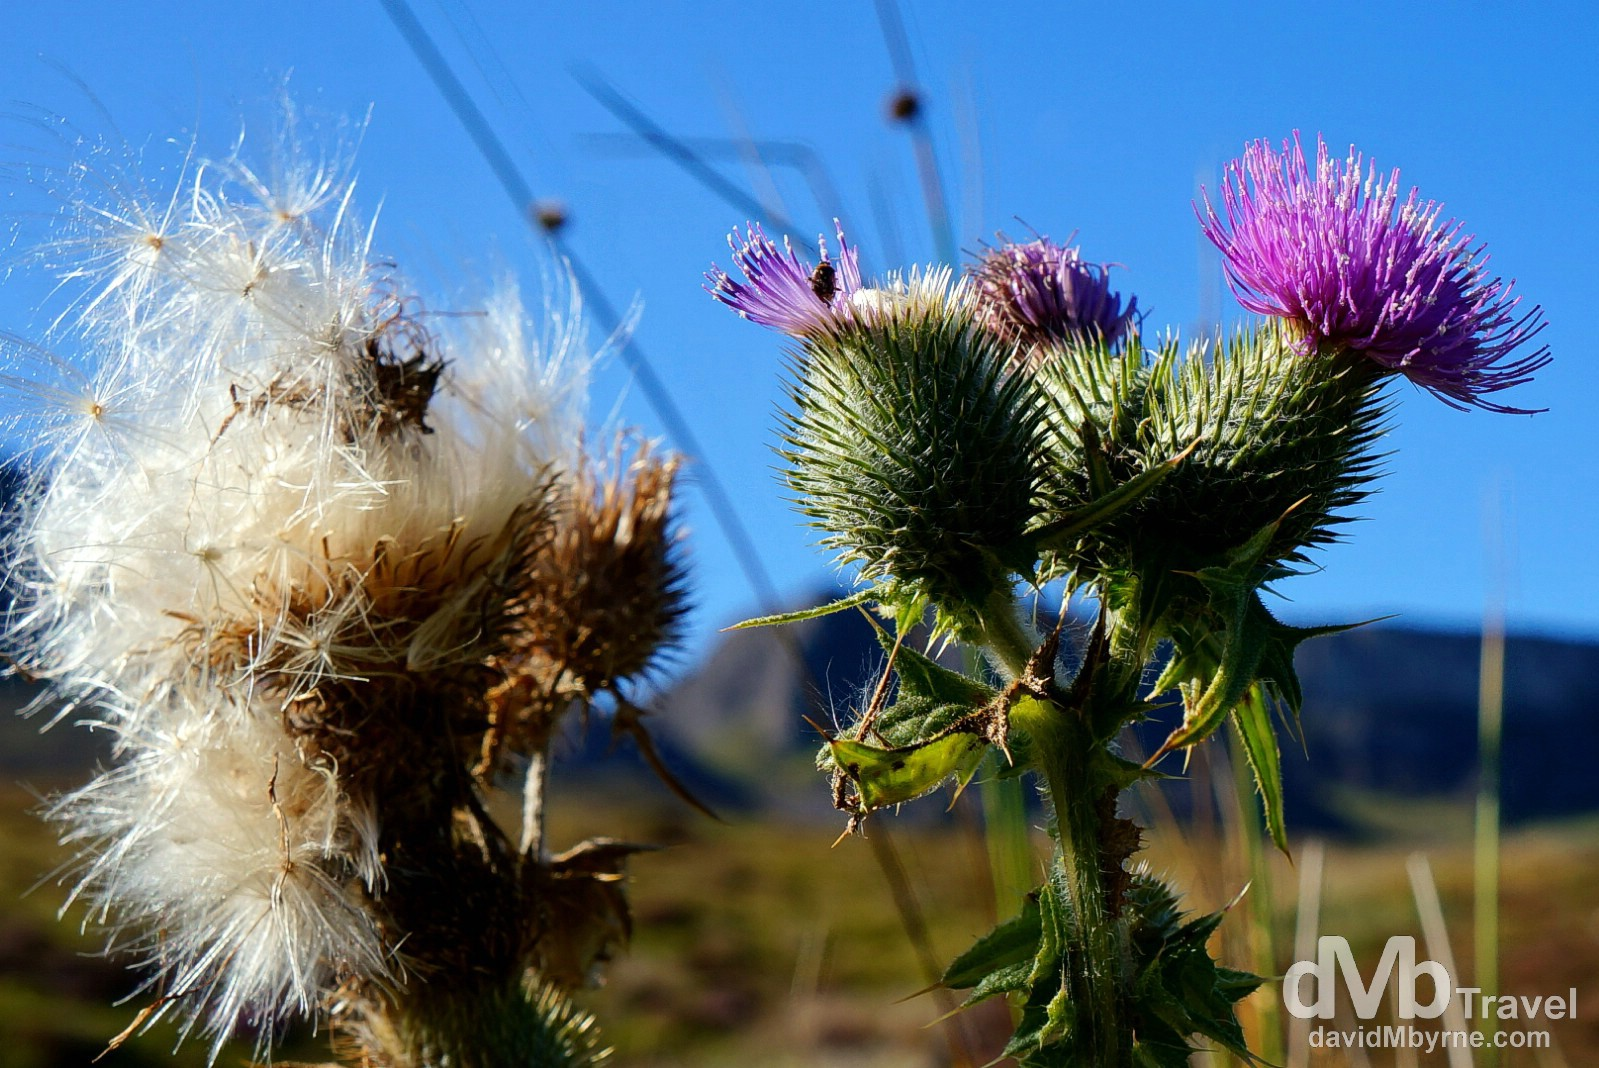 A thistle, a Scottish icon, at the tip of the Trotternish Peninsula on the Isle of Skye, Scotland. September 17, 2014.